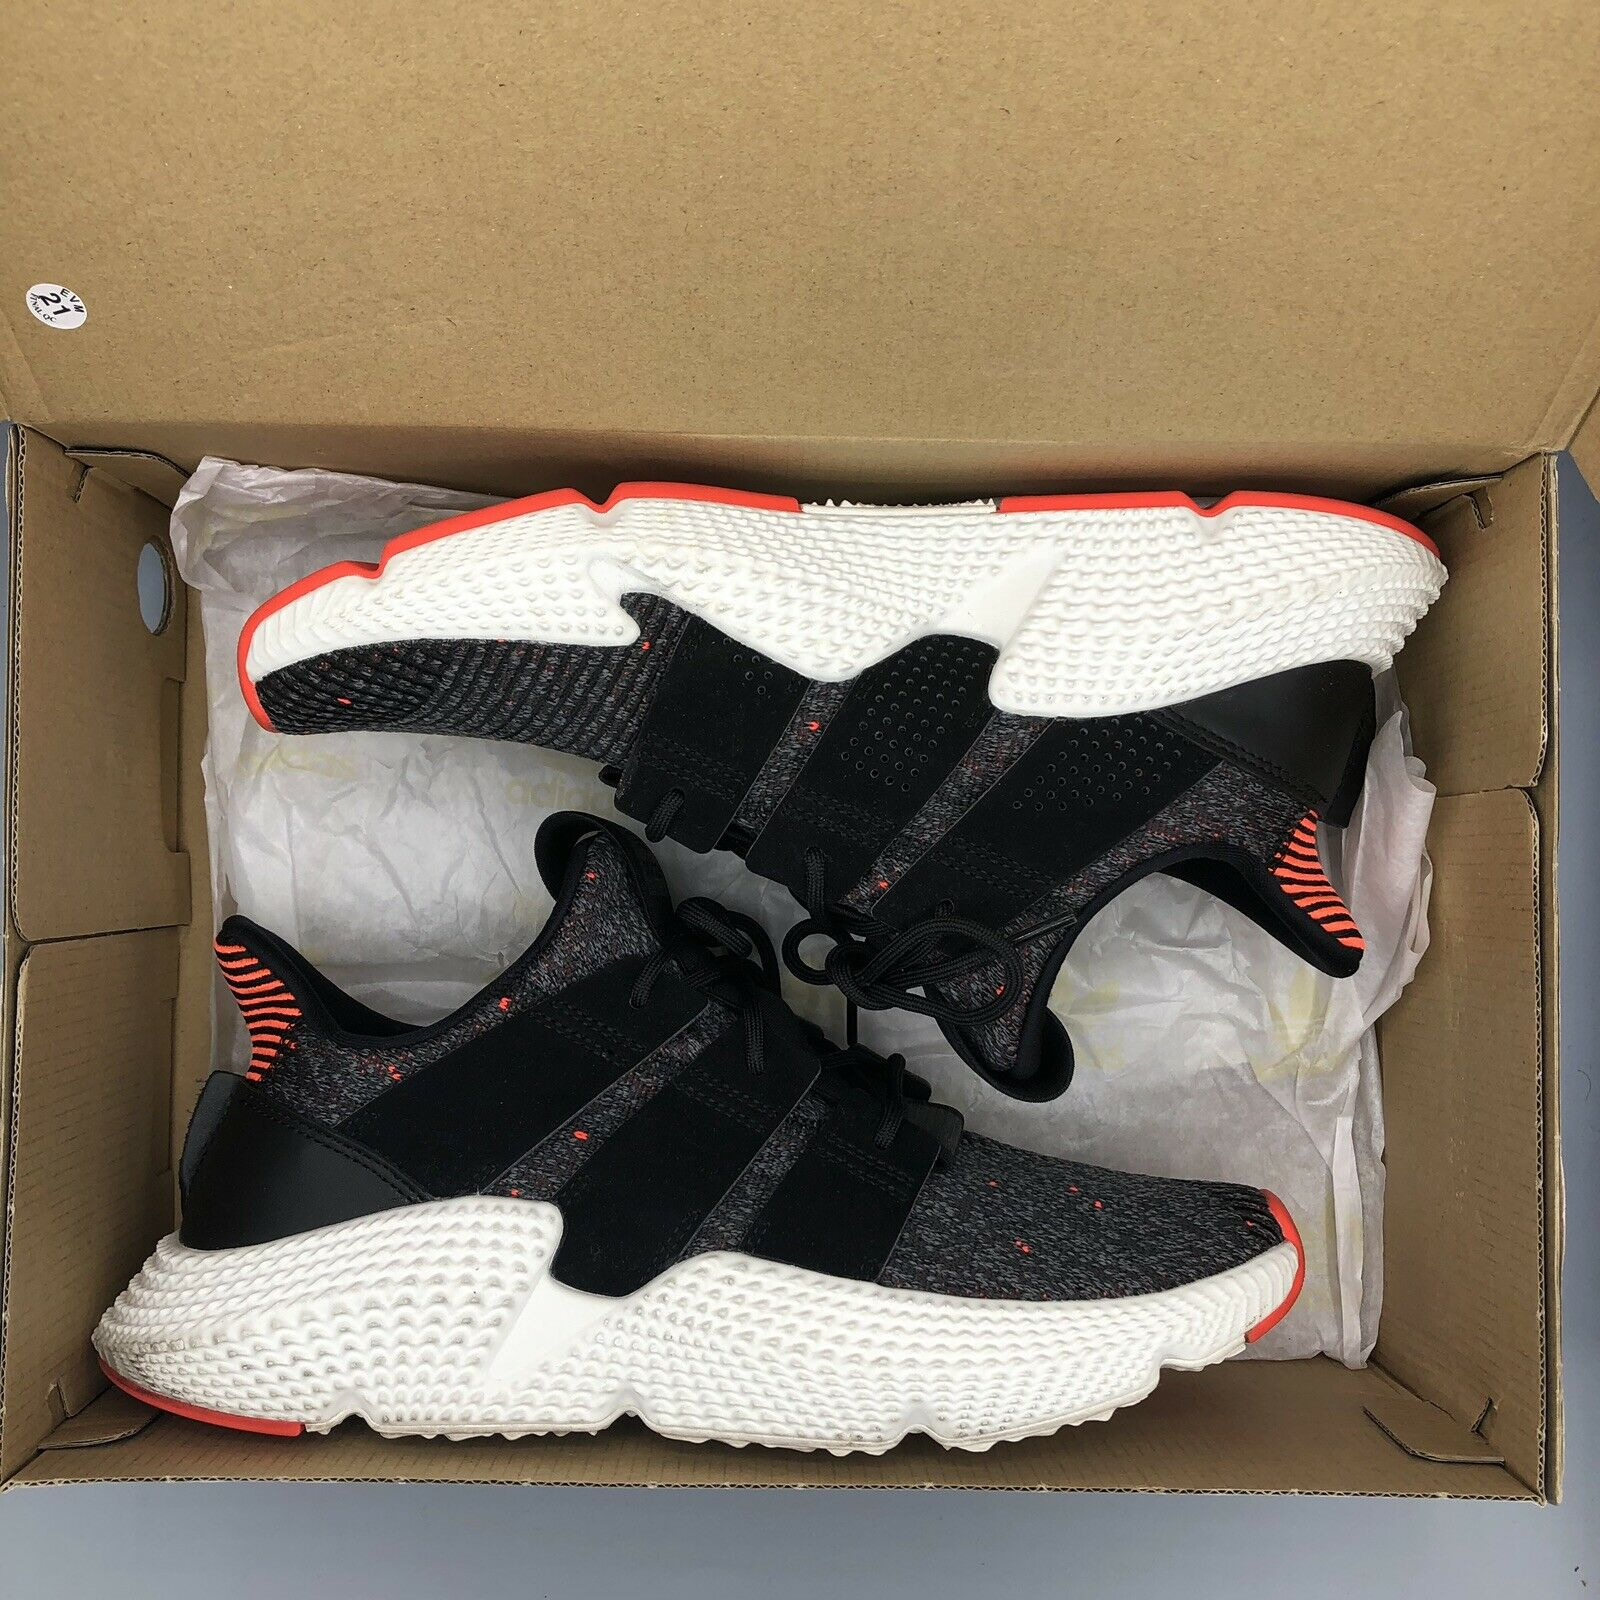 Adidas Originals Prophere Solar Red Core Black Infrared Size 9.5 CQ3022 Yeezy